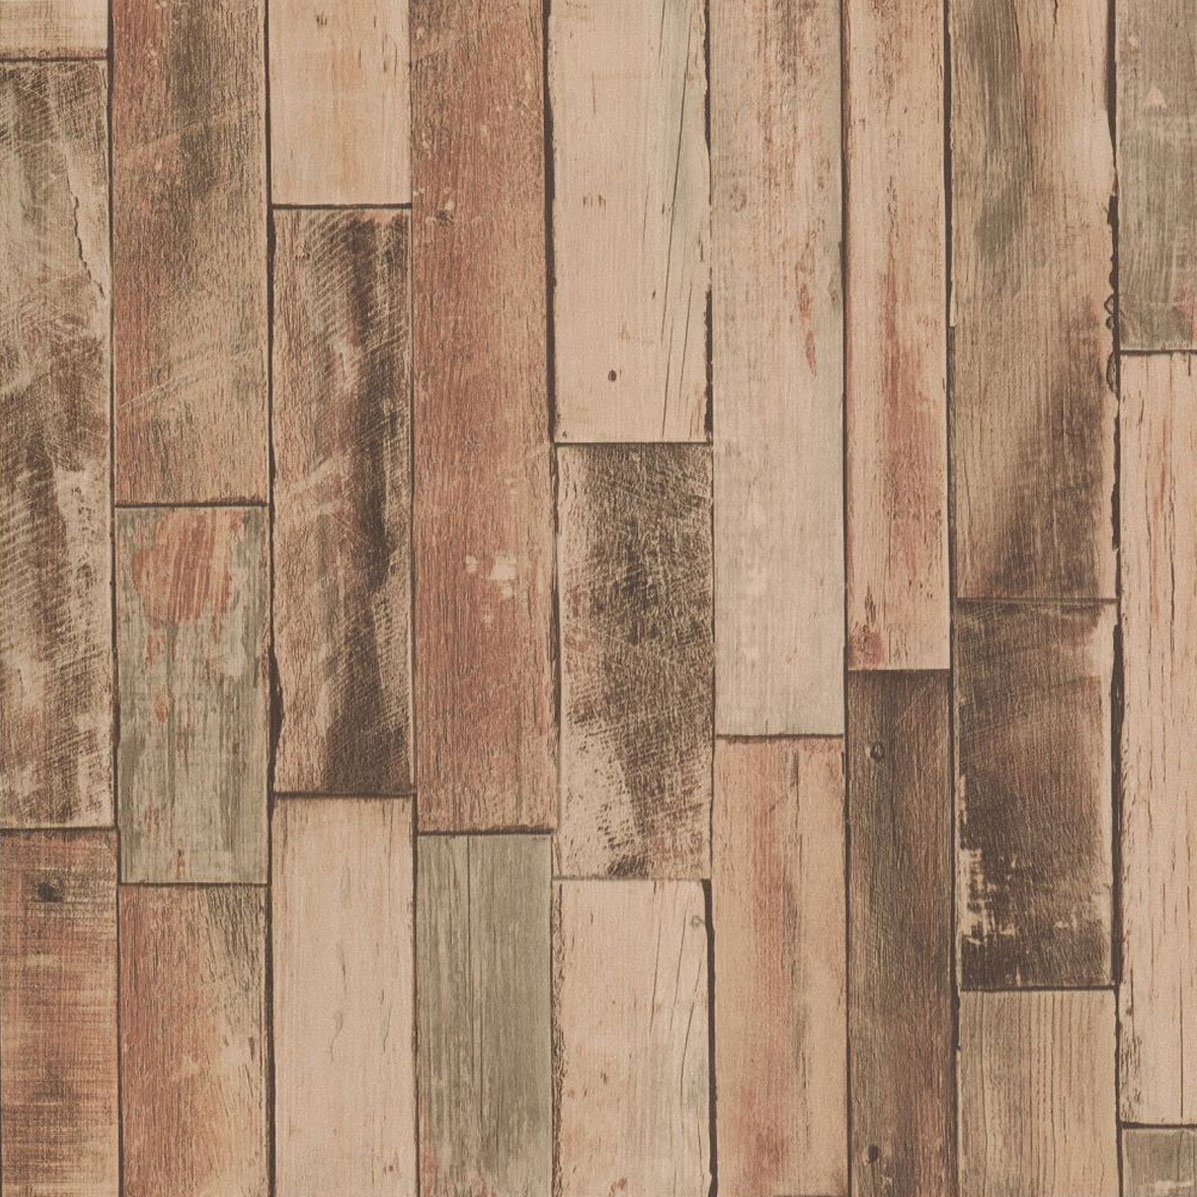 Details About Wooden Effect Vinyl Wallpaper Real Life Look Wood Panels Boards Brown Paste Wall